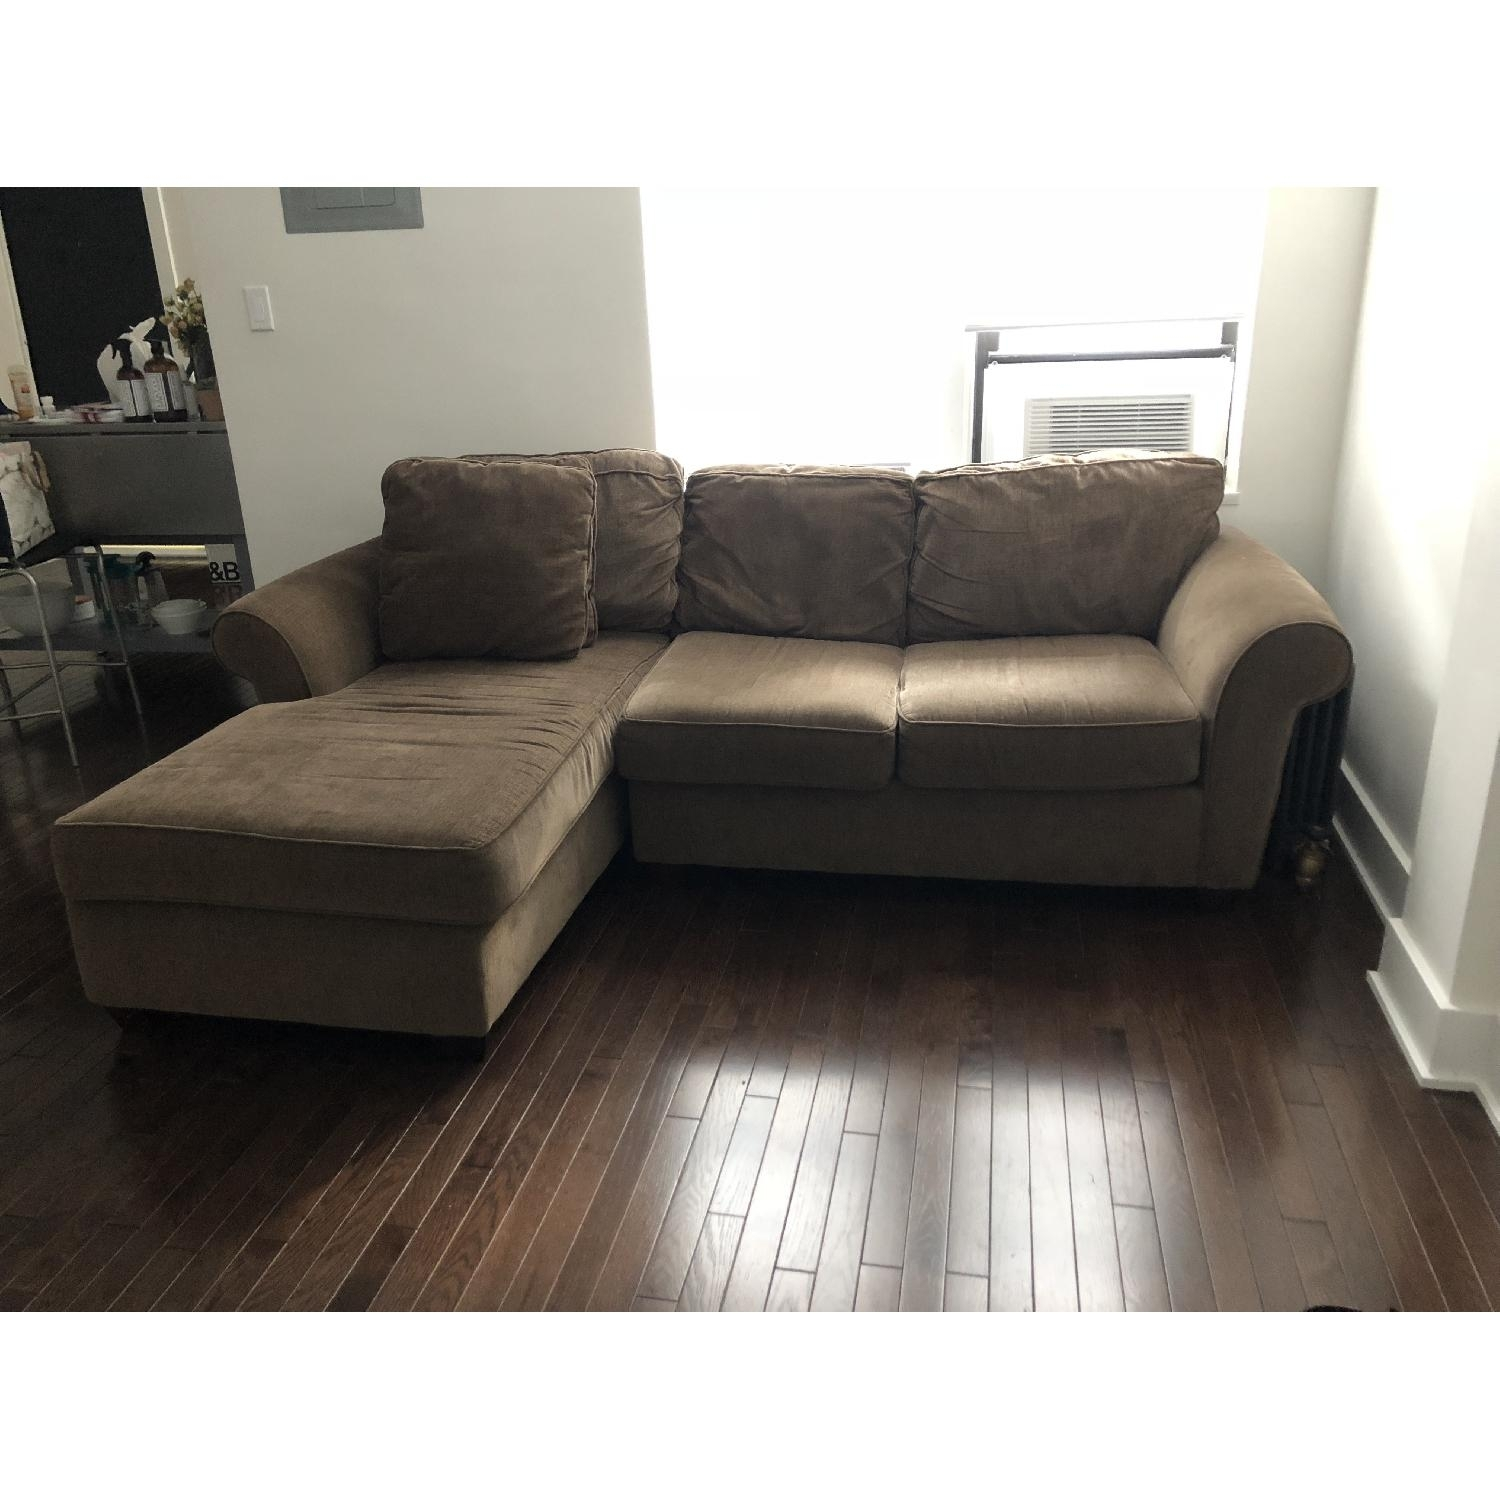 2 Piece Chaise Sectional Sofa | Baci Living Room Pertaining To Tenny Cognac 2 Piece Left Facing Chaise Sectionals With 2 Headrest (Photo 9 of 30)